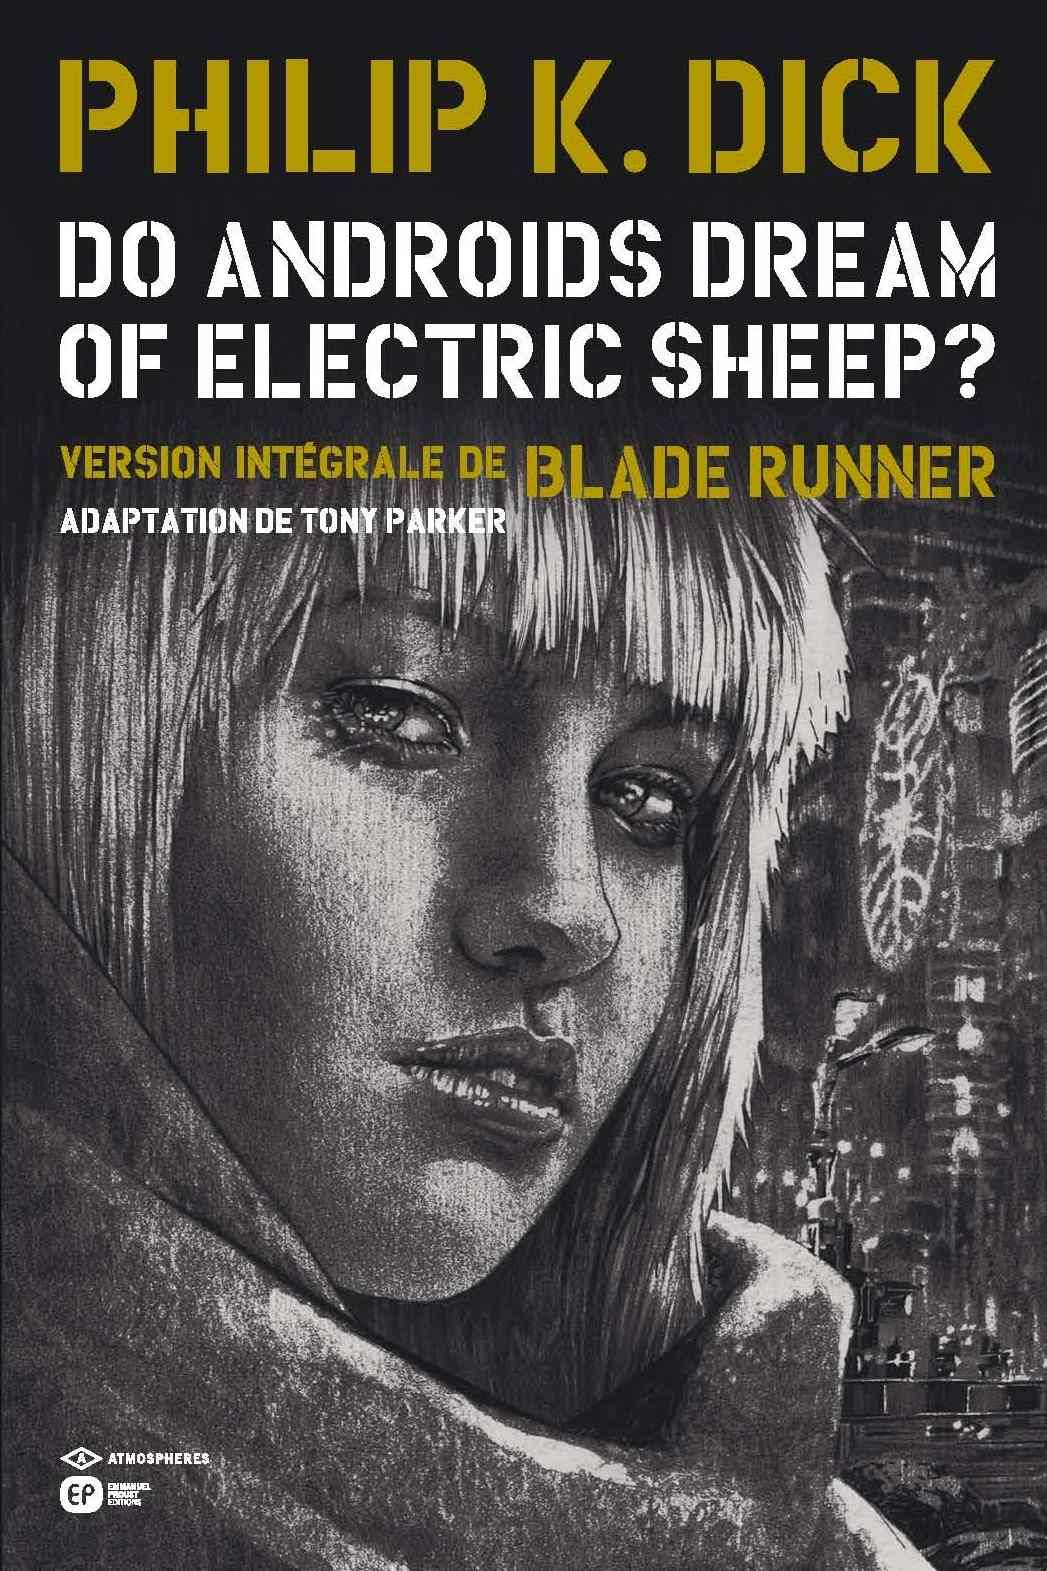 Do Androids Dream Of Electric Sheep? | Philip K. Dick okładki ...